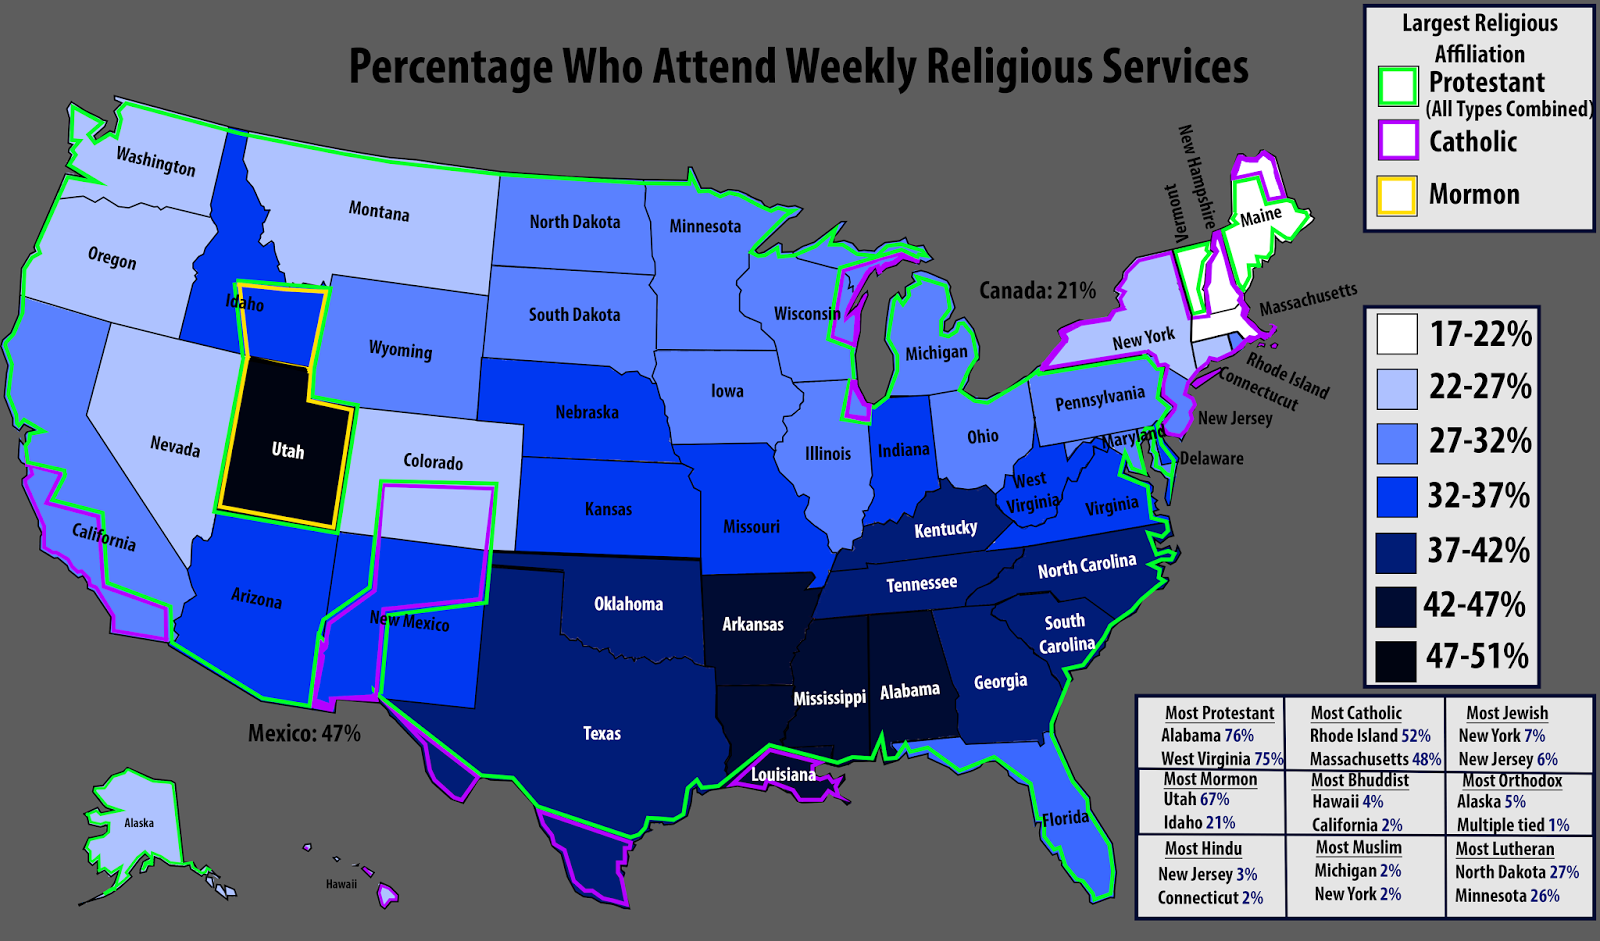 Percentage of Americans who attend weekly religious services